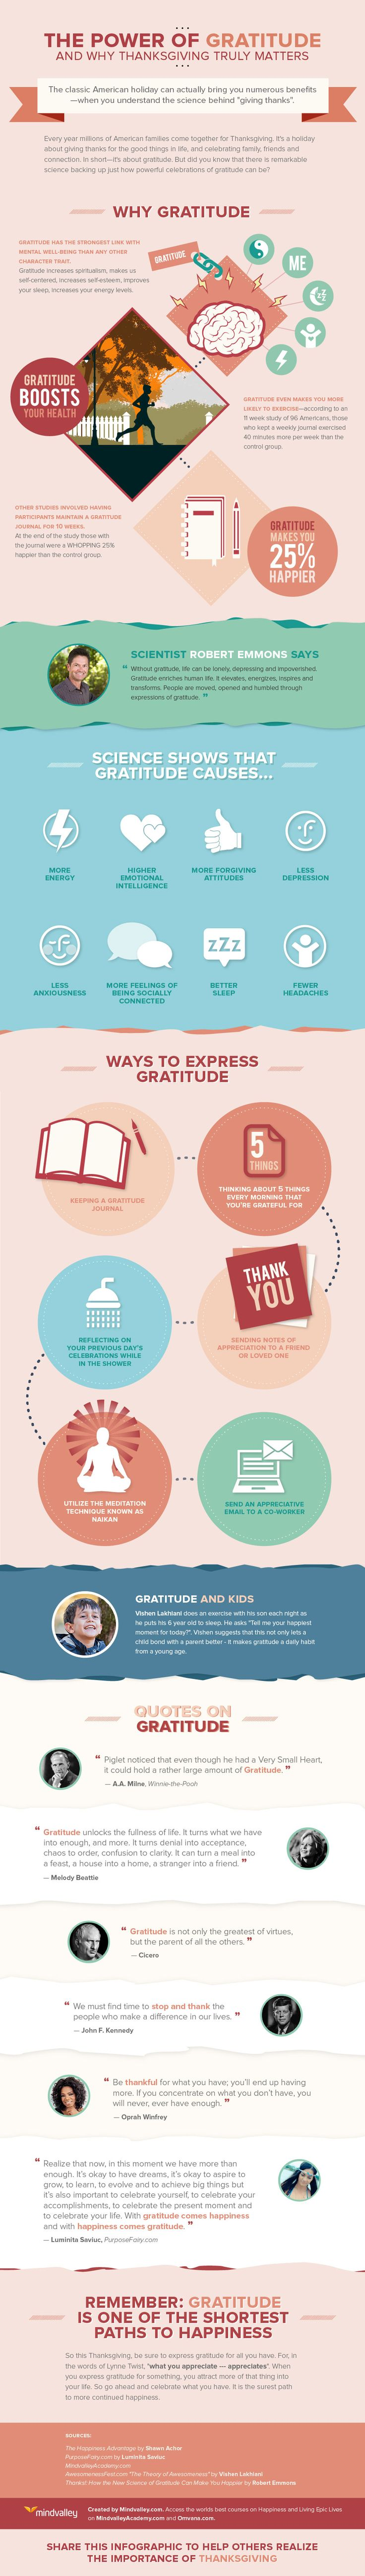 The Power of Gratitude (an infographic to make you smile)